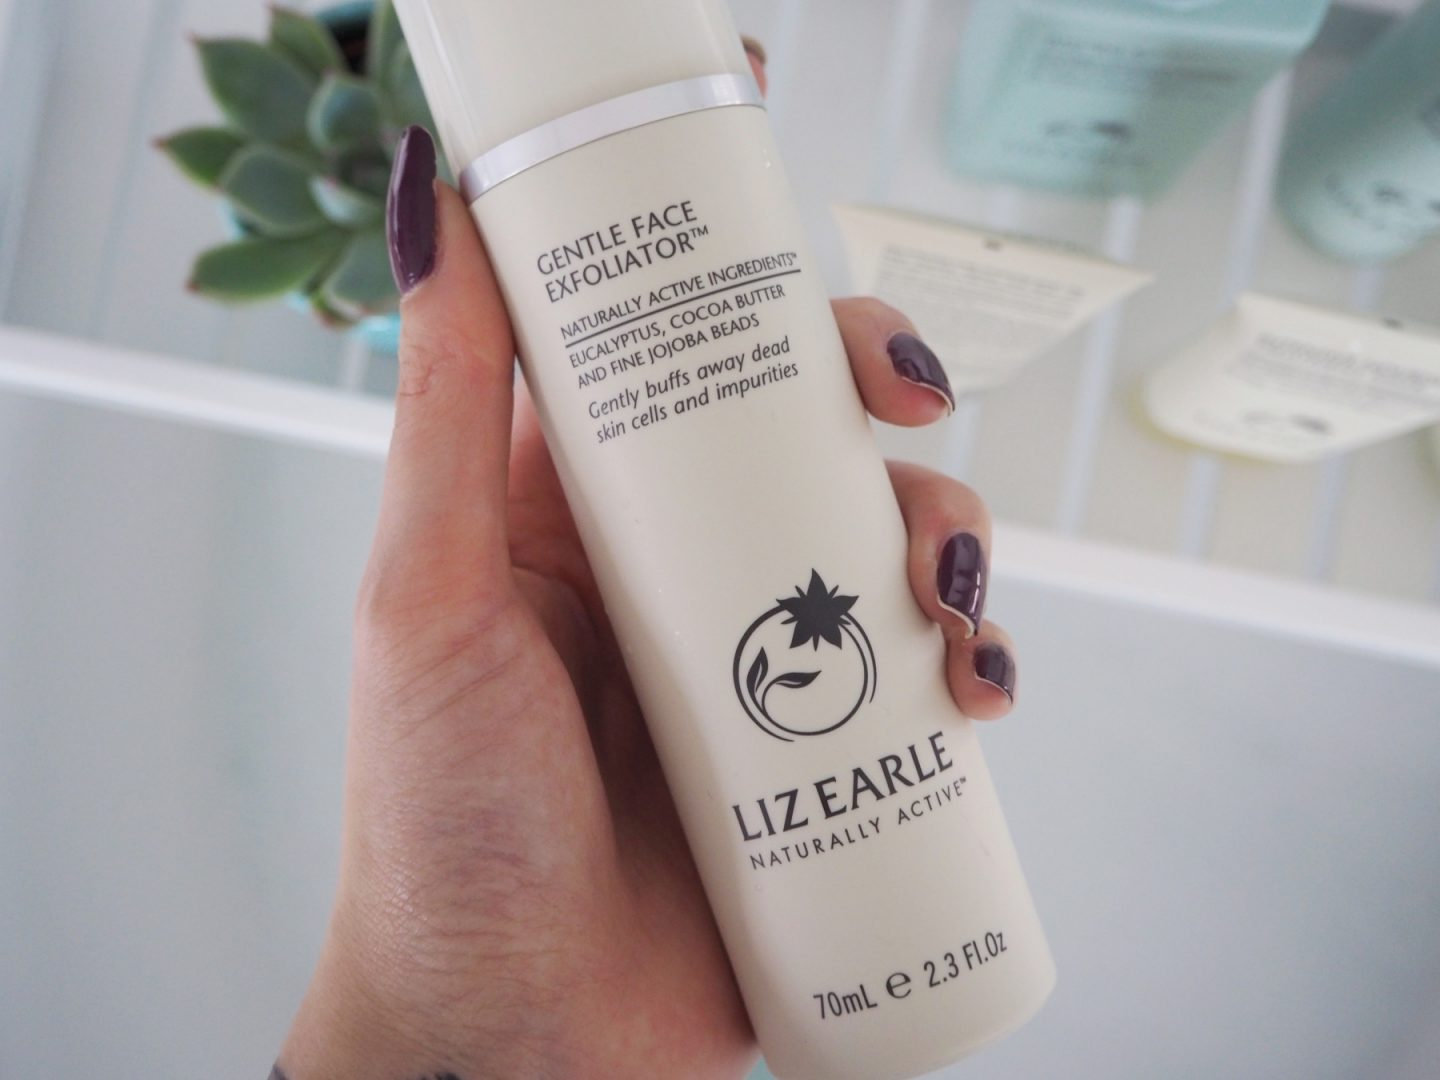 A Liz Earle Review - gentle face exfoliator